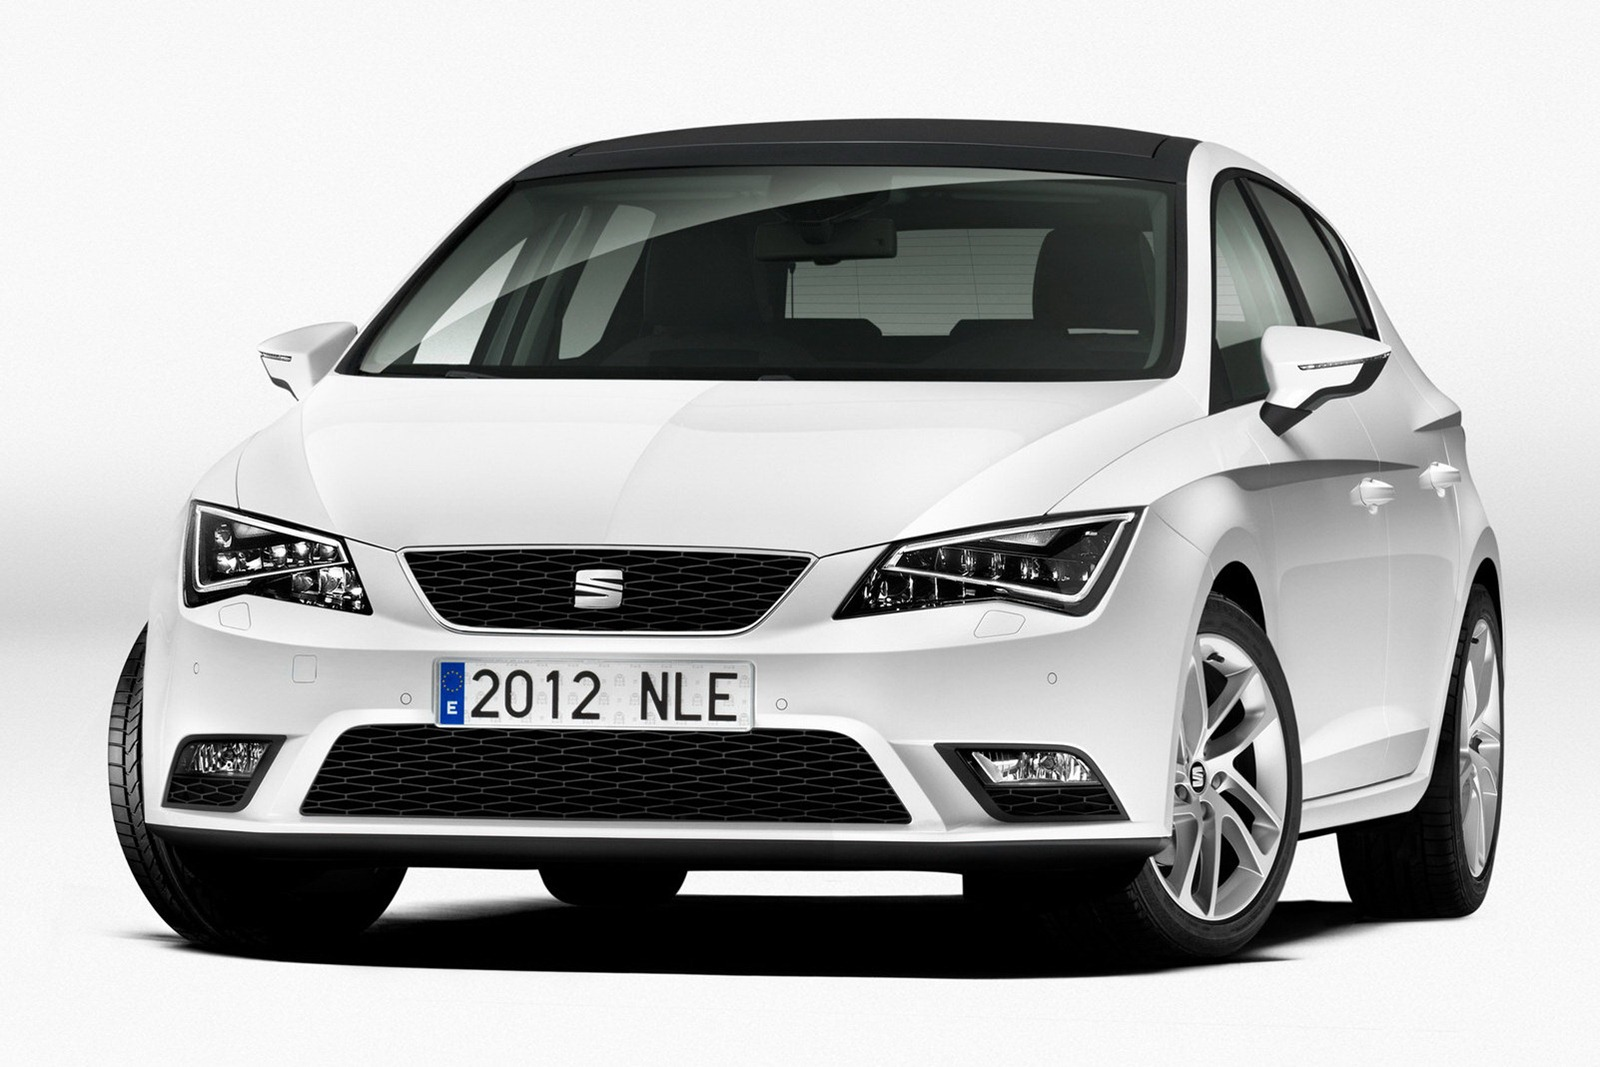 2013 Seat Leon 2013 Seat Leon   Majestic Aesthete, Dazzling Color Contrast and Superb Nav System